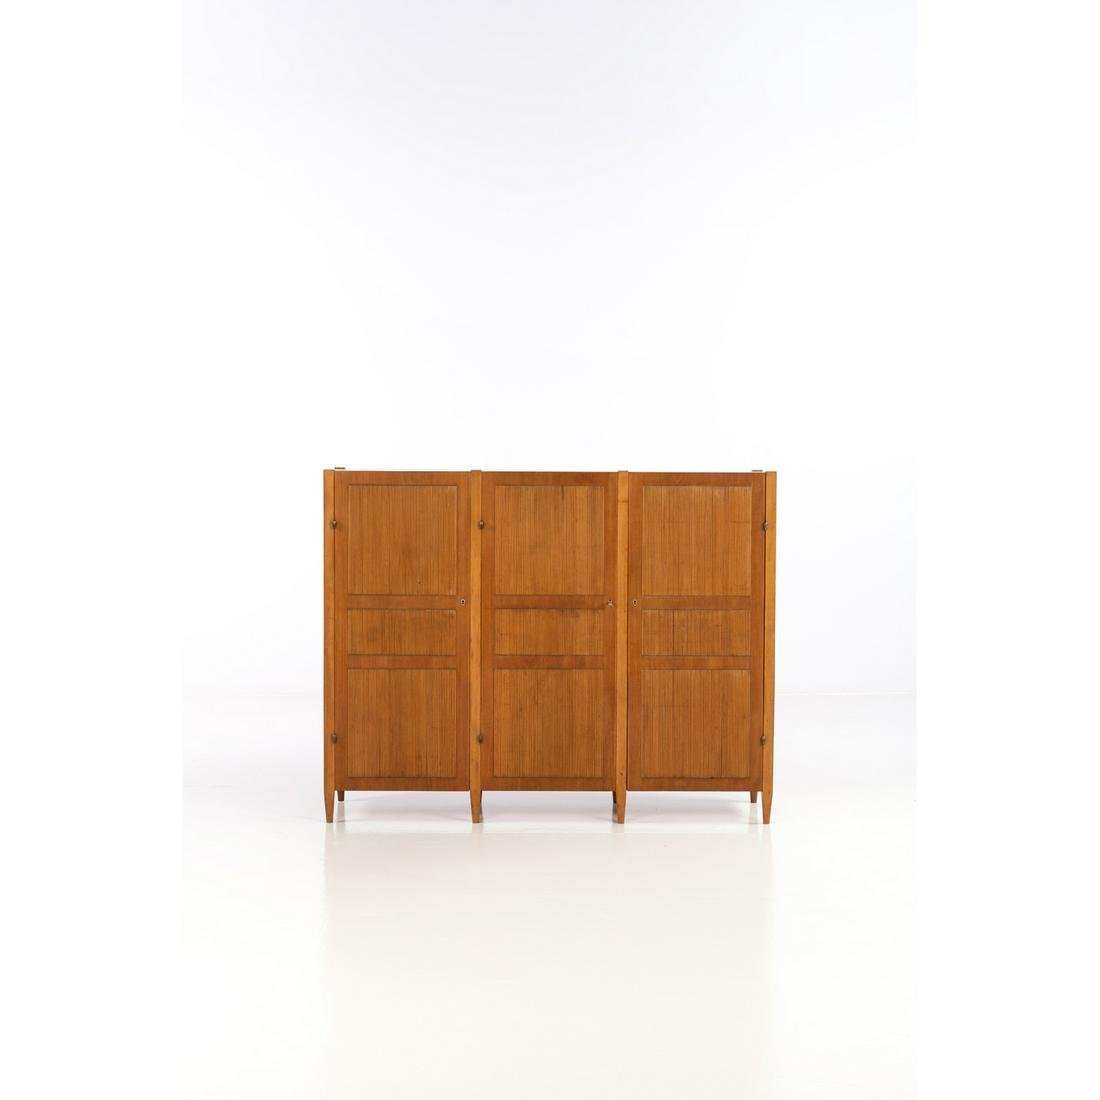 Carl-Axel Acking Cabinet (1910-2001) Mahogany, walnut